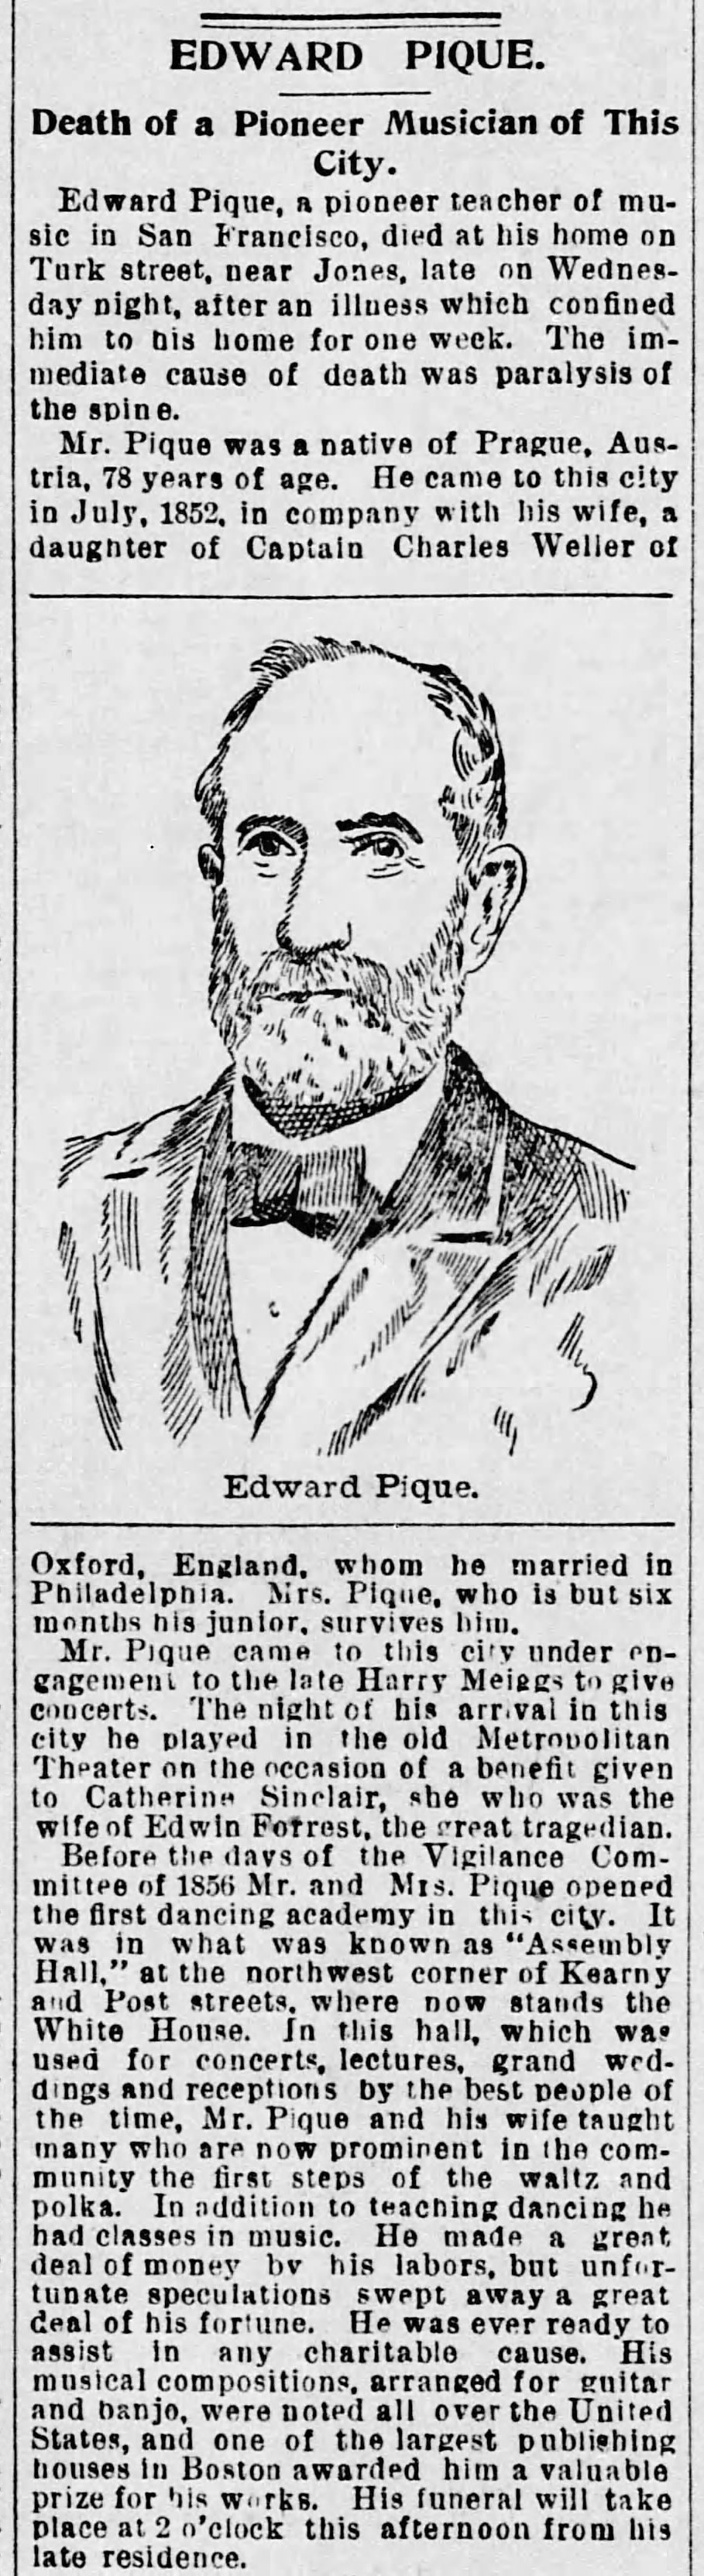 """Edward Pique: Death of a Pioneer Musician of This City,""  San Francisco  Morning Call , 4 August 1893, p.10. Source: Newspapers.com"